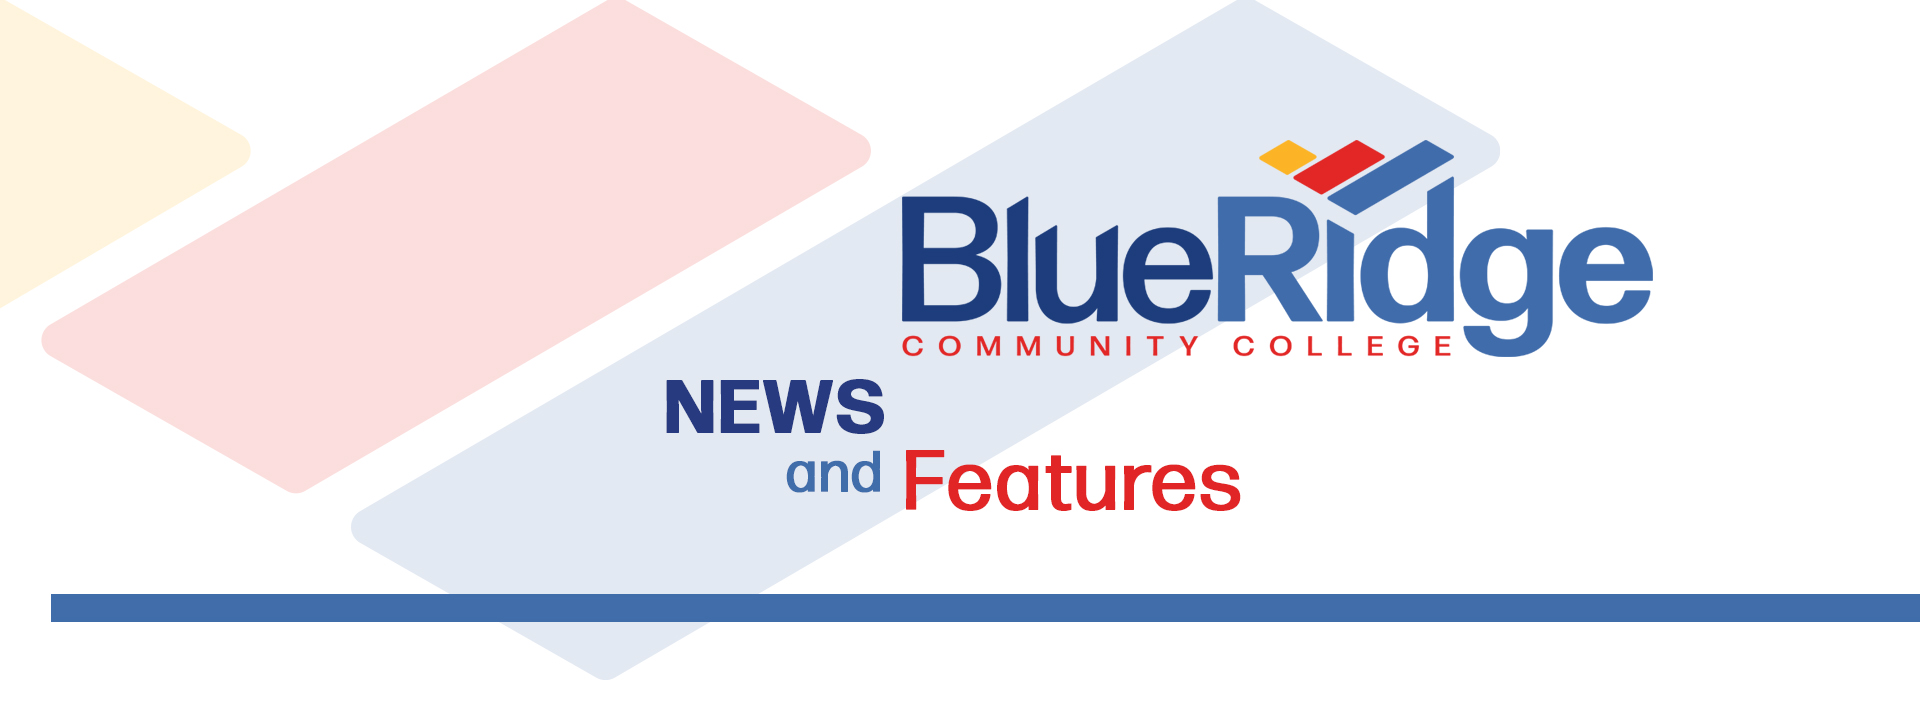 ftr-Blue-Ridge-Community-College-News-and-Features